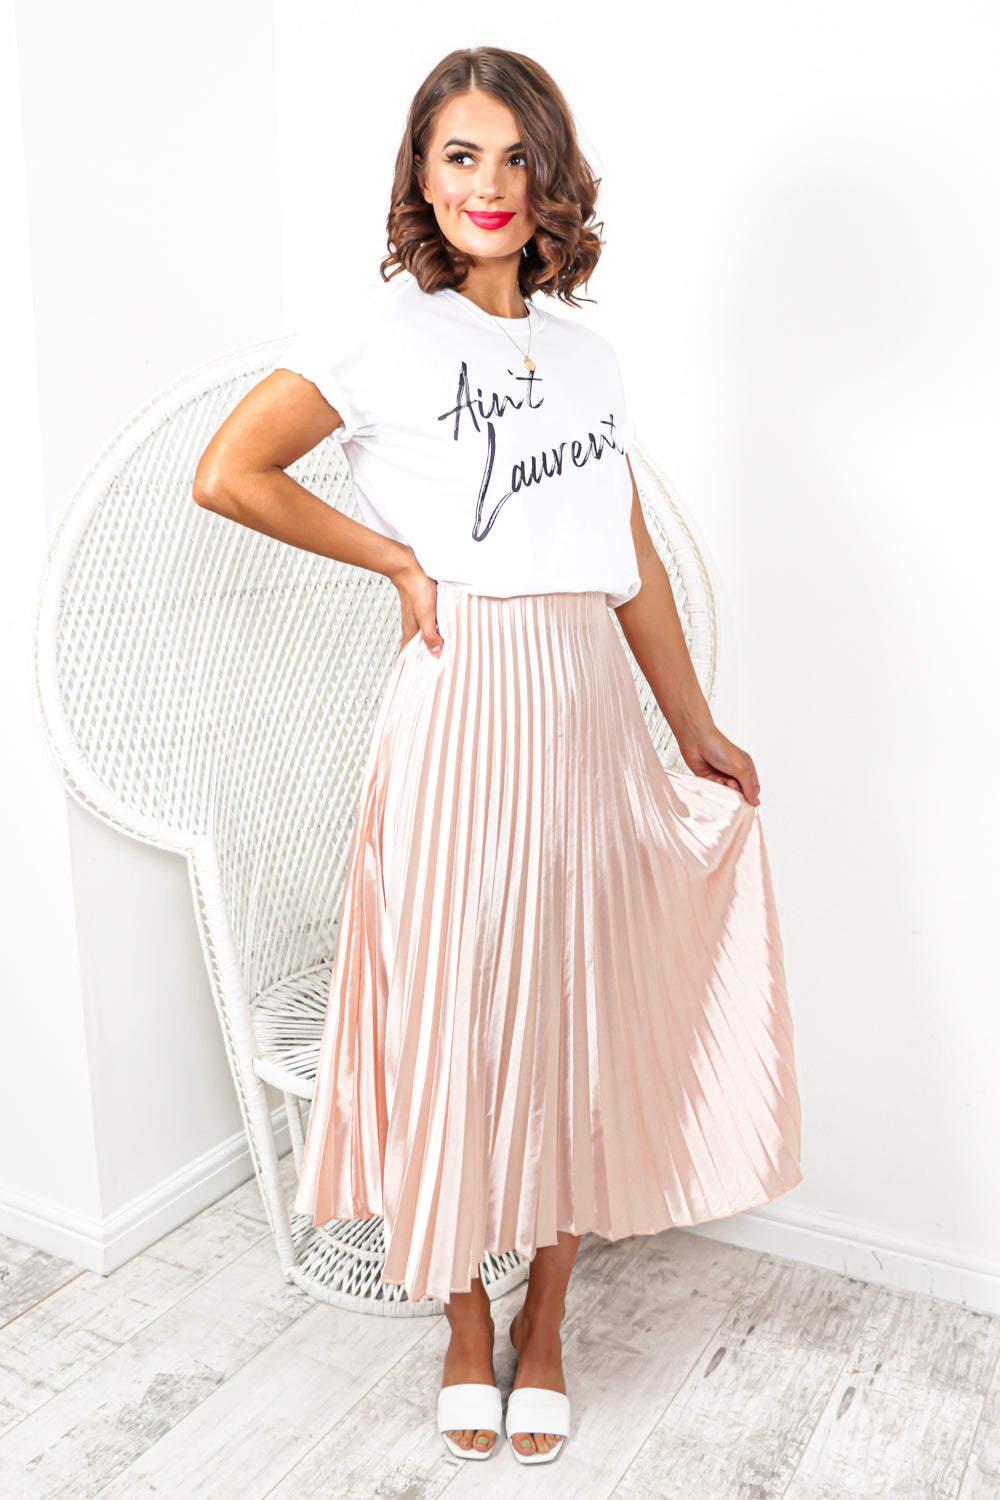 Uptown Girl - Skirt In BLUSH